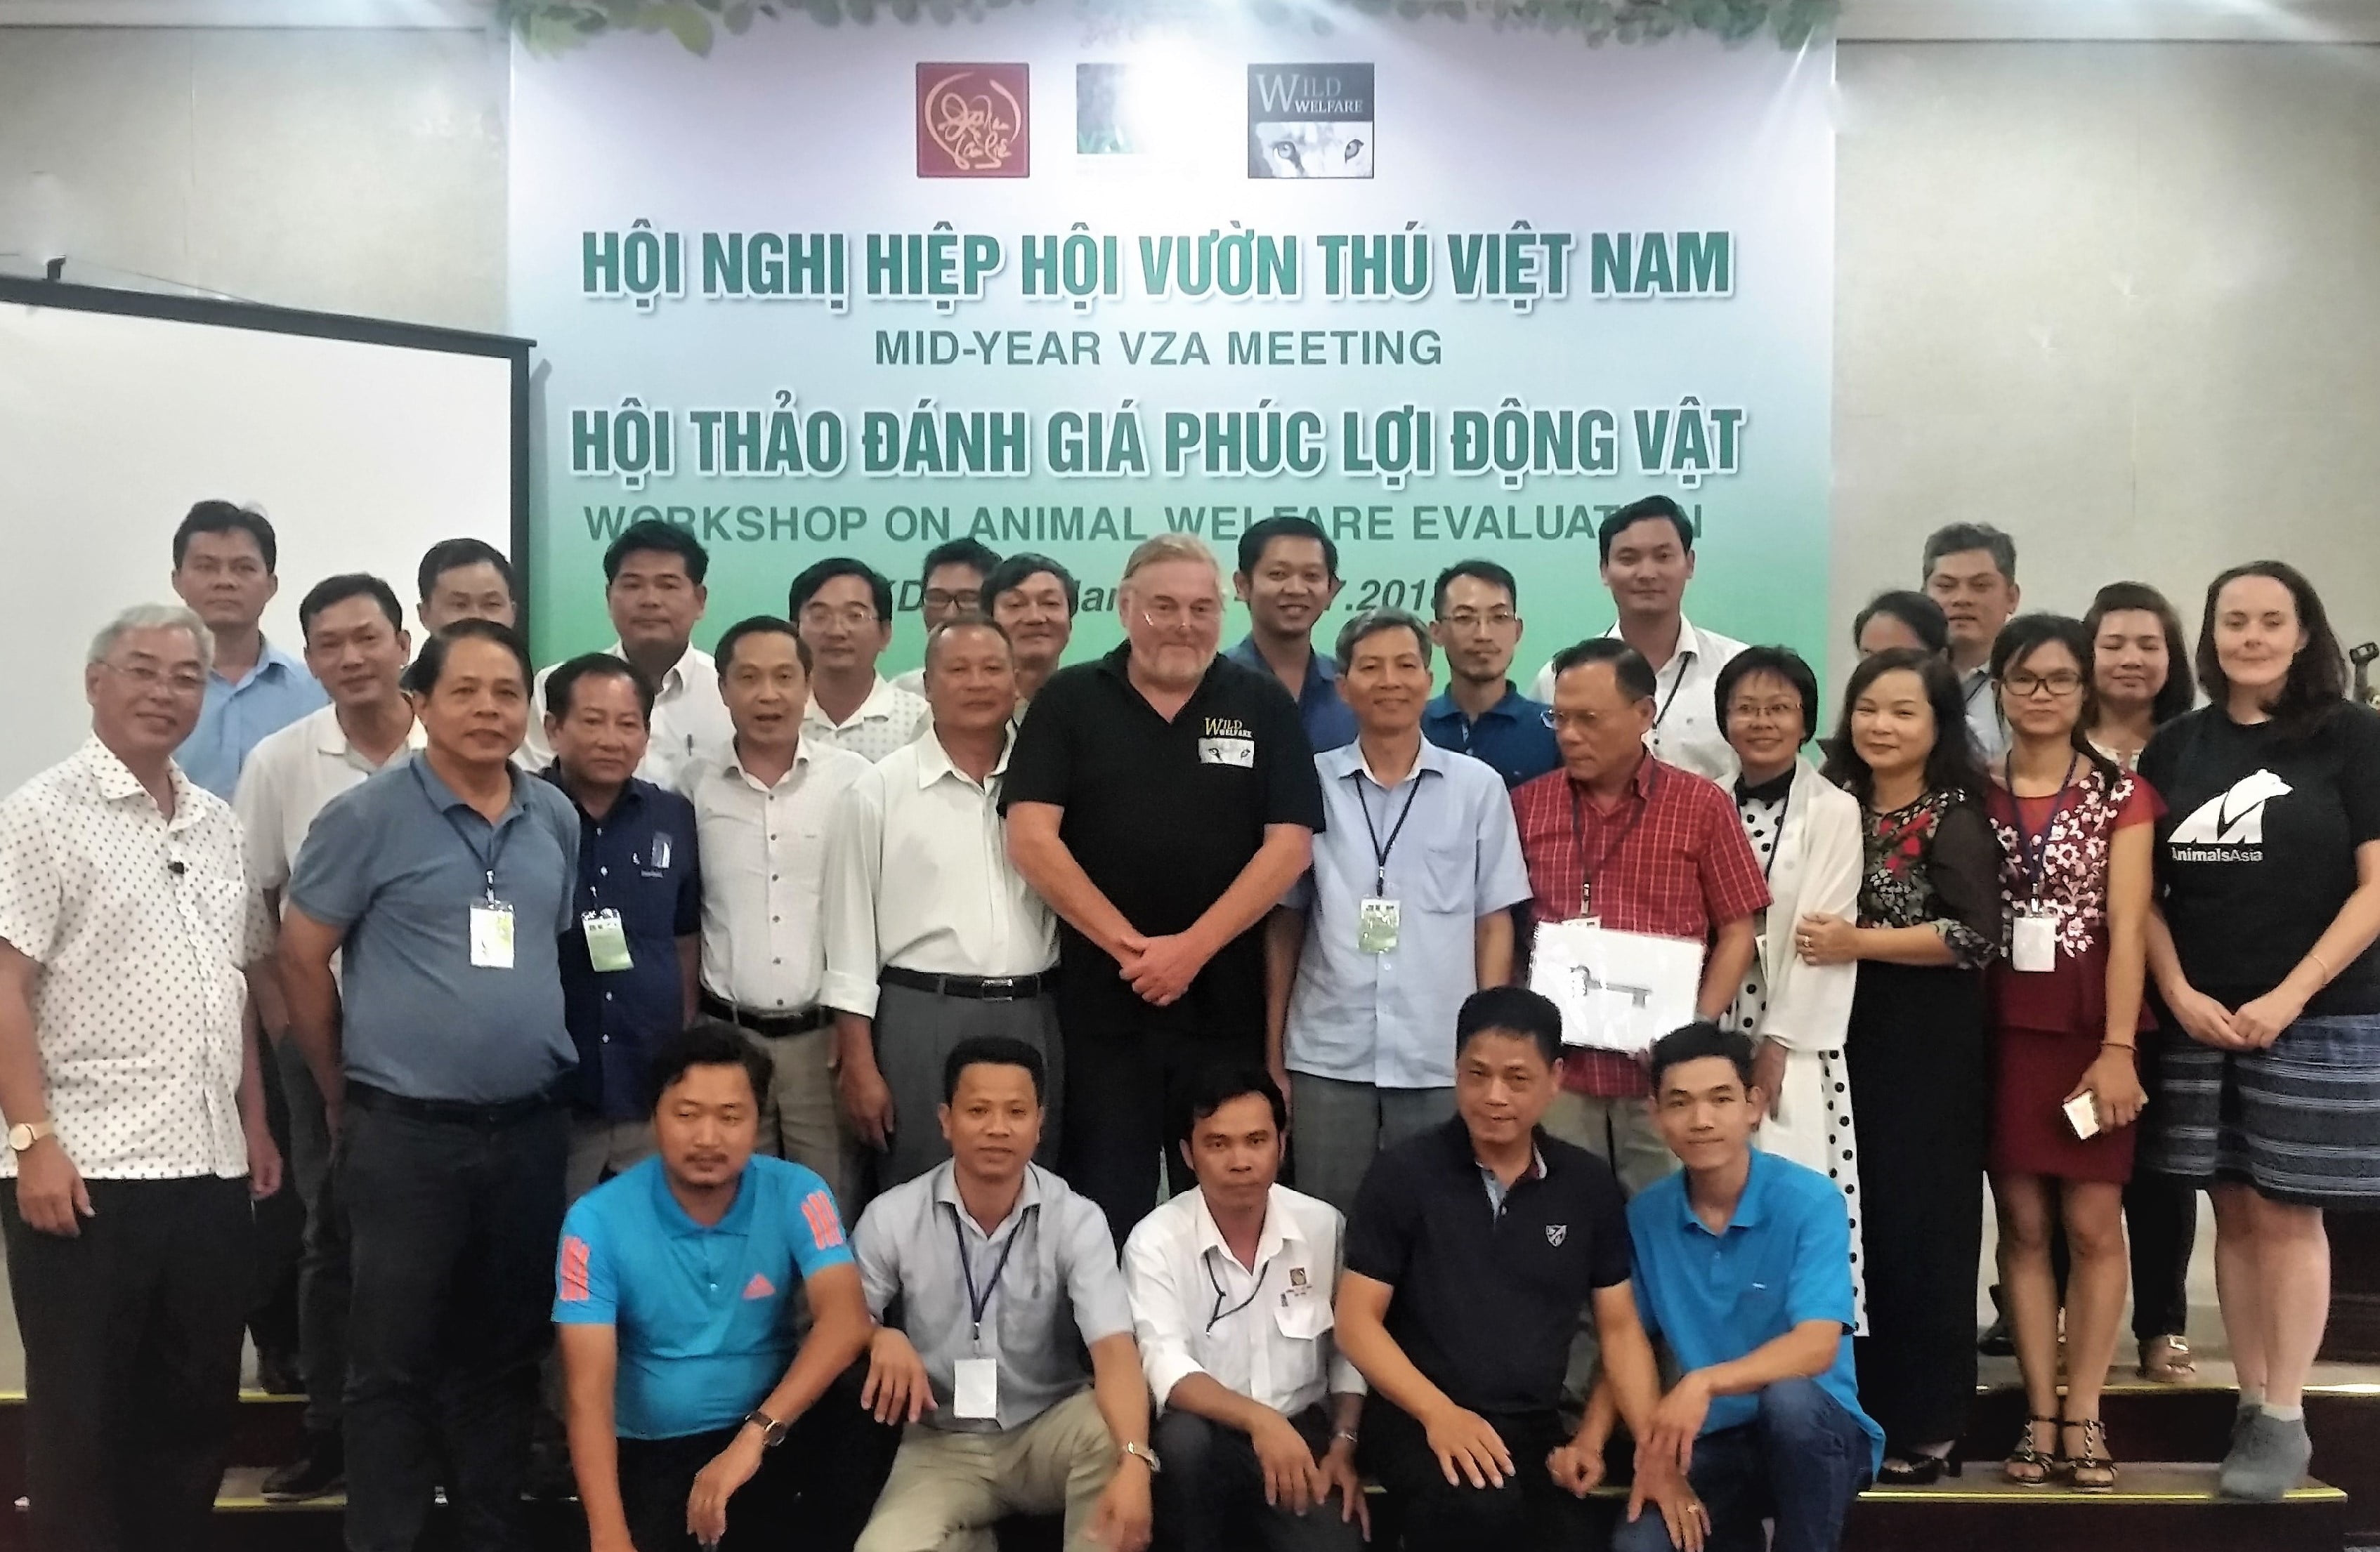 Participants at Wild Welfare animal welfare training seminar in Vietnam